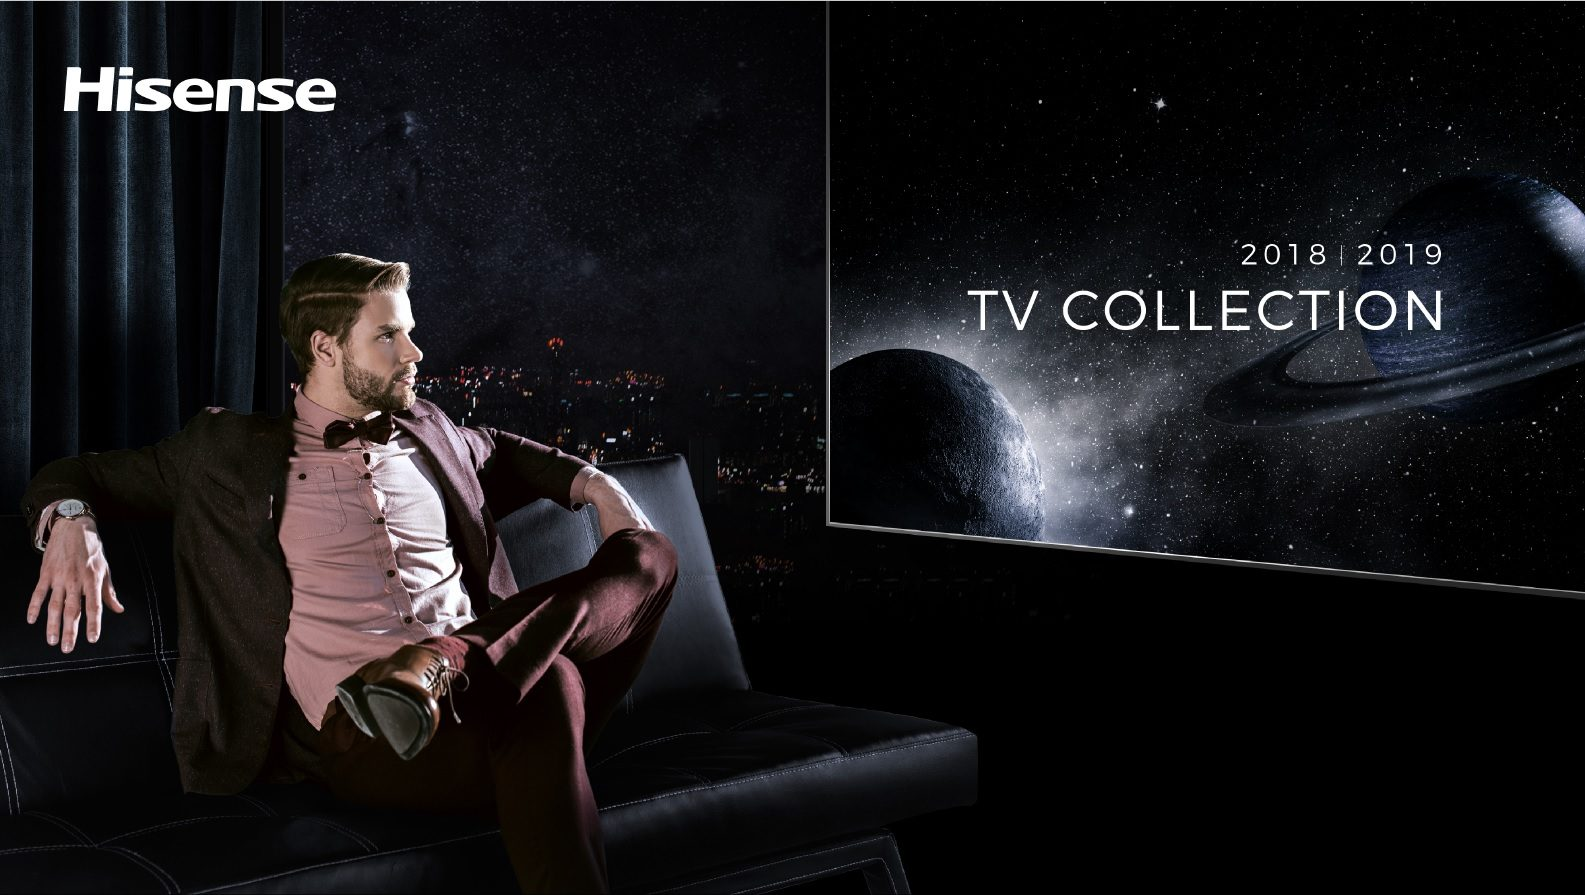 Hisense TV Collection